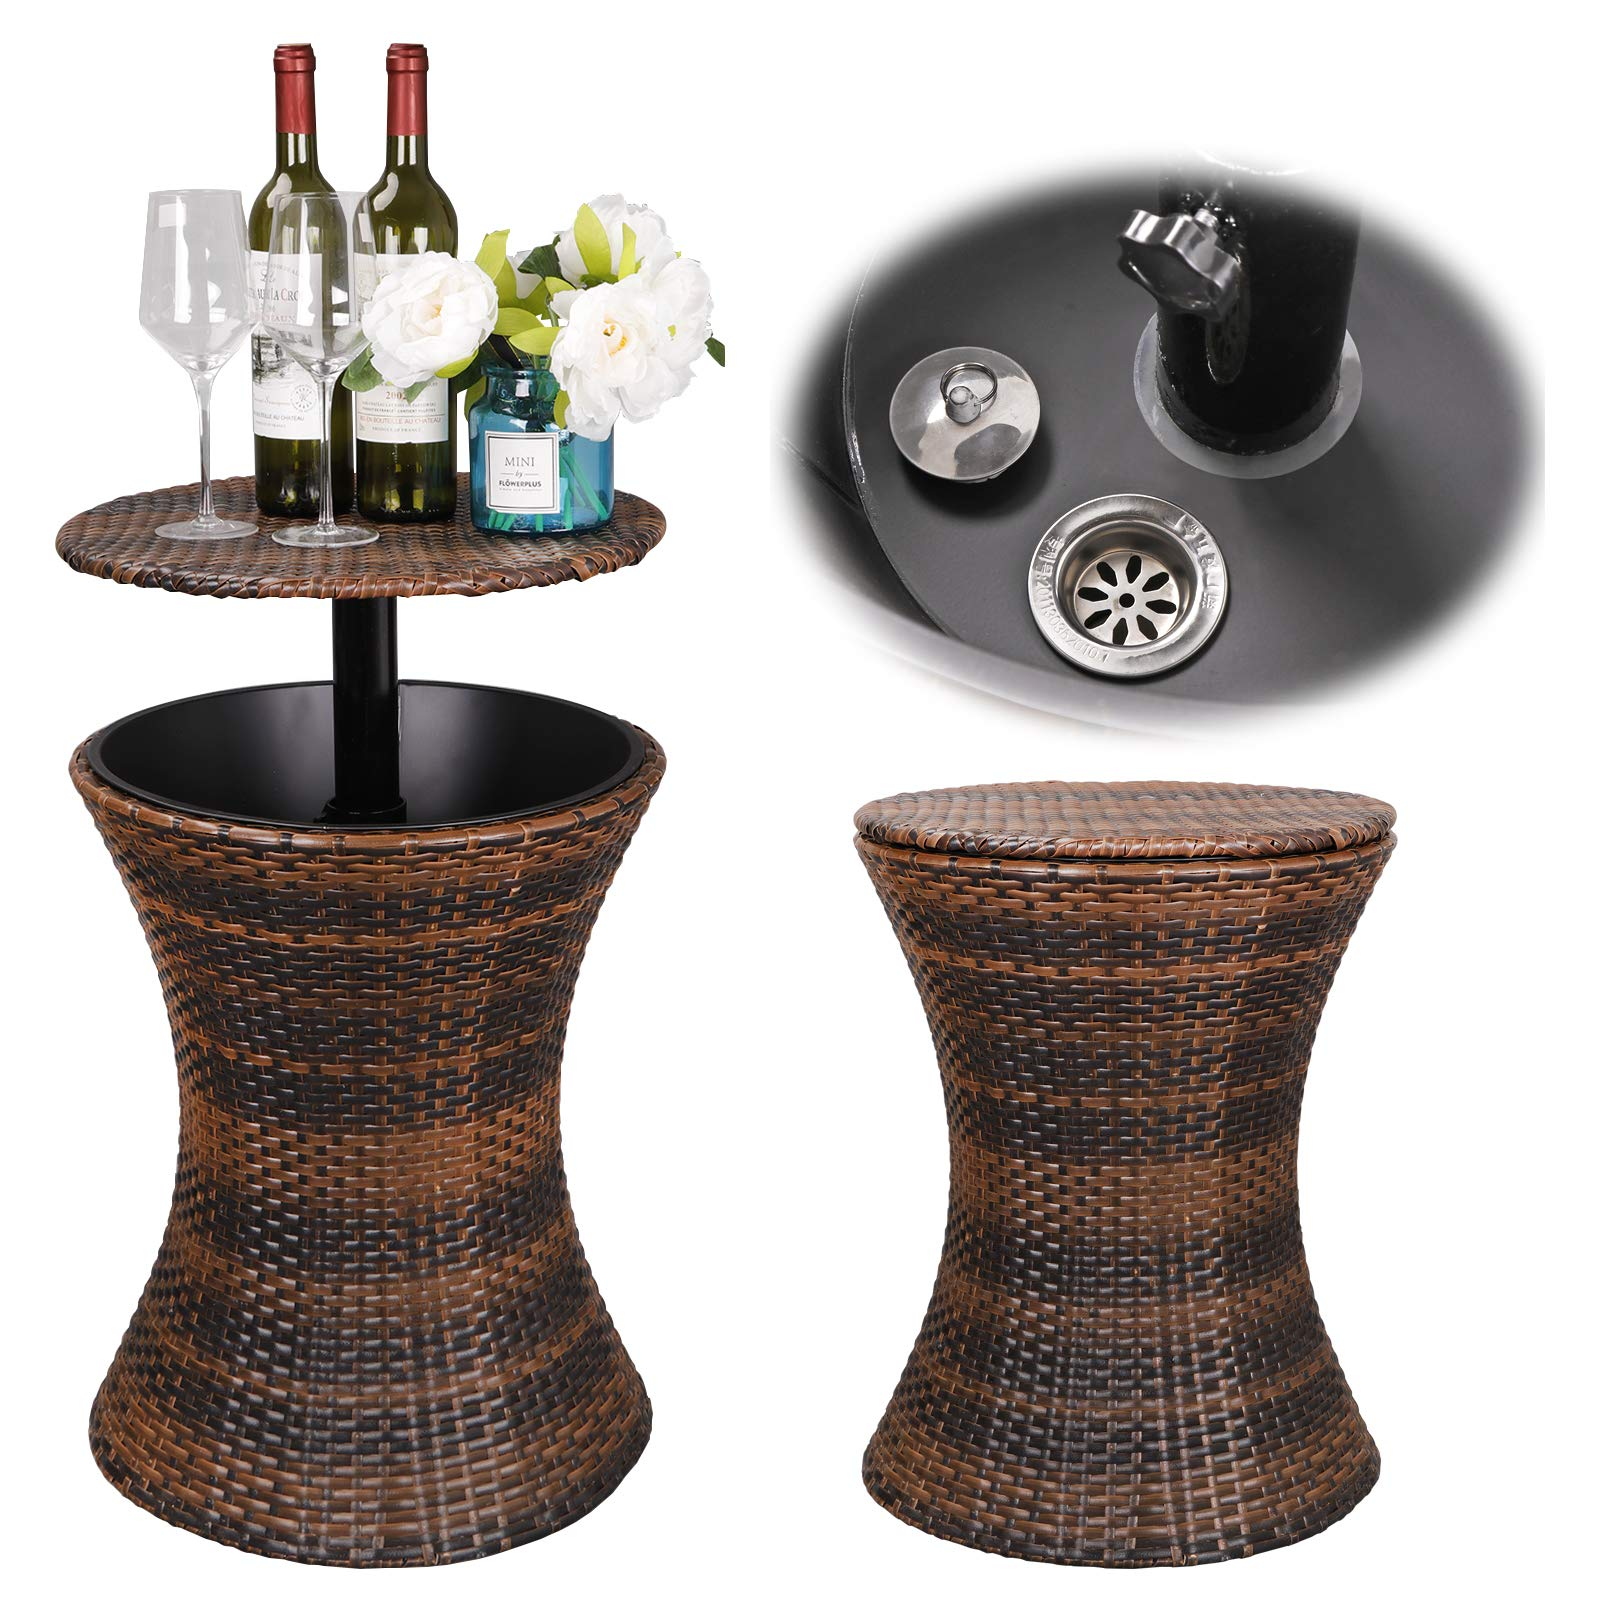 JungleA Height Adjustable Rattan Style Outdoor All-Weather Patio Pool Cooler Table with Ice Bucket by JungleA